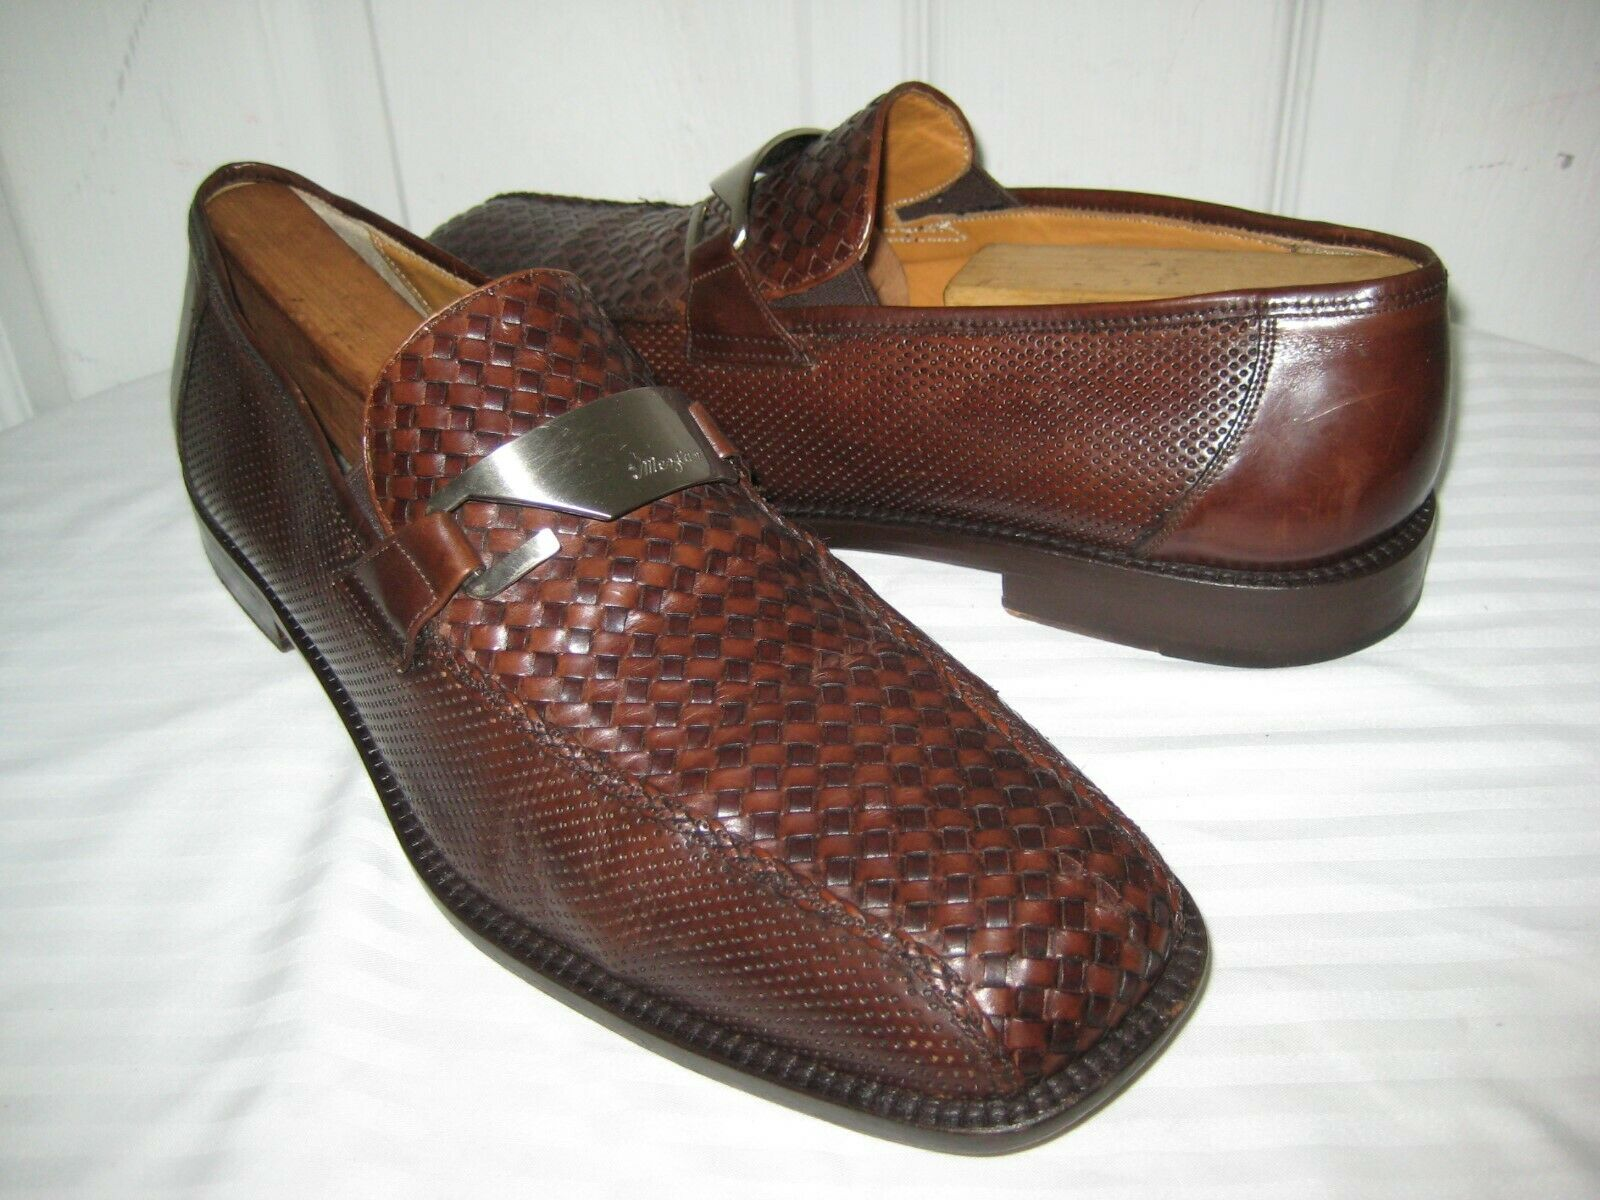 Mezlan Brown Leather Hand Made Woven Loafer shoes Men's Size 11 M.